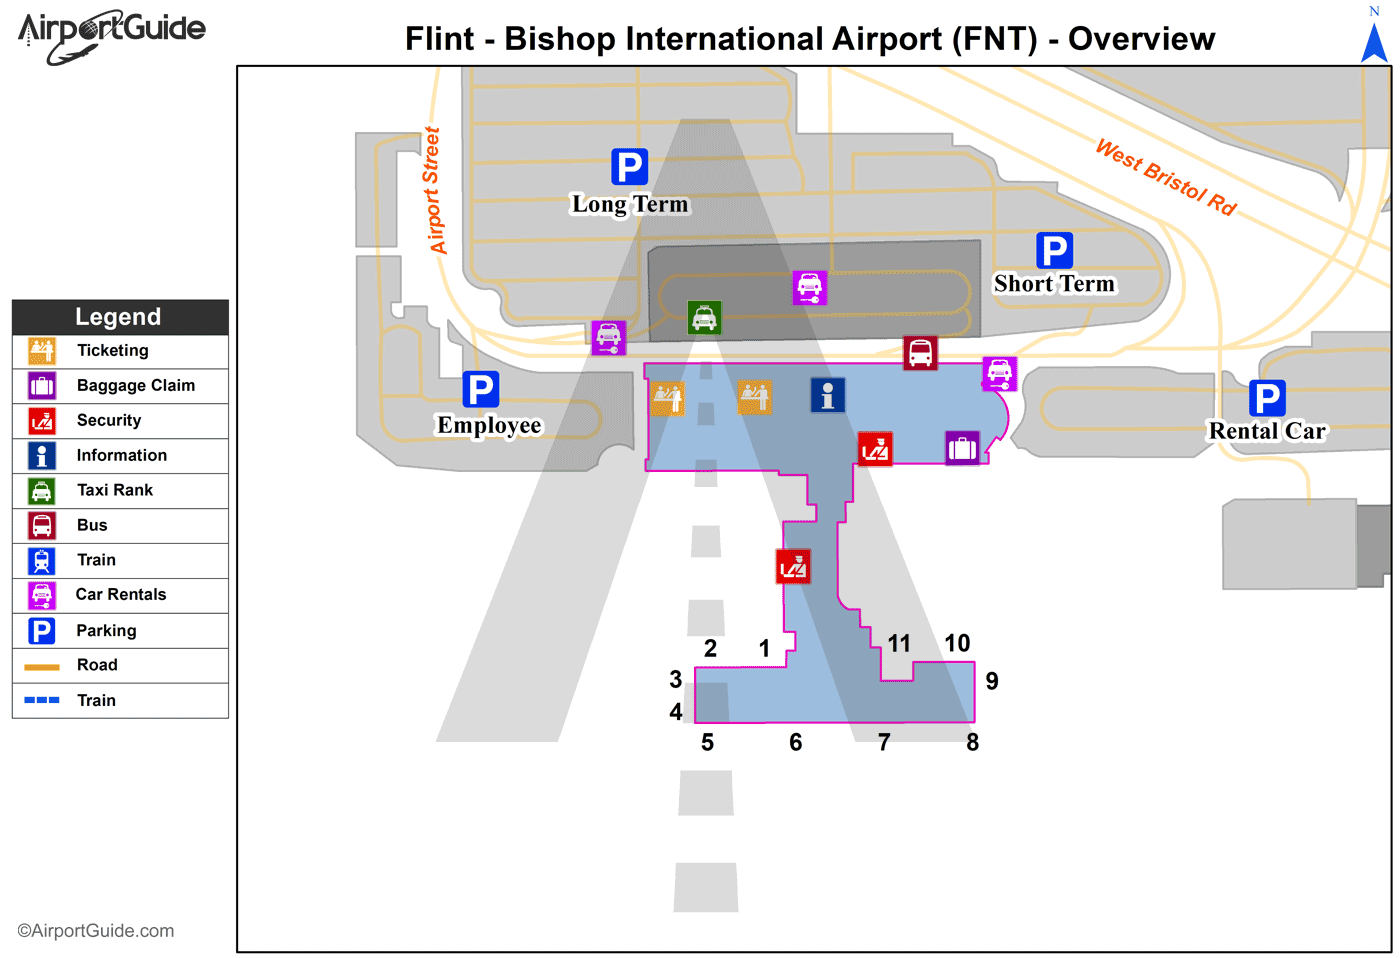 Flint - Bishop International (FNT) Airport Terminal Map - Overview